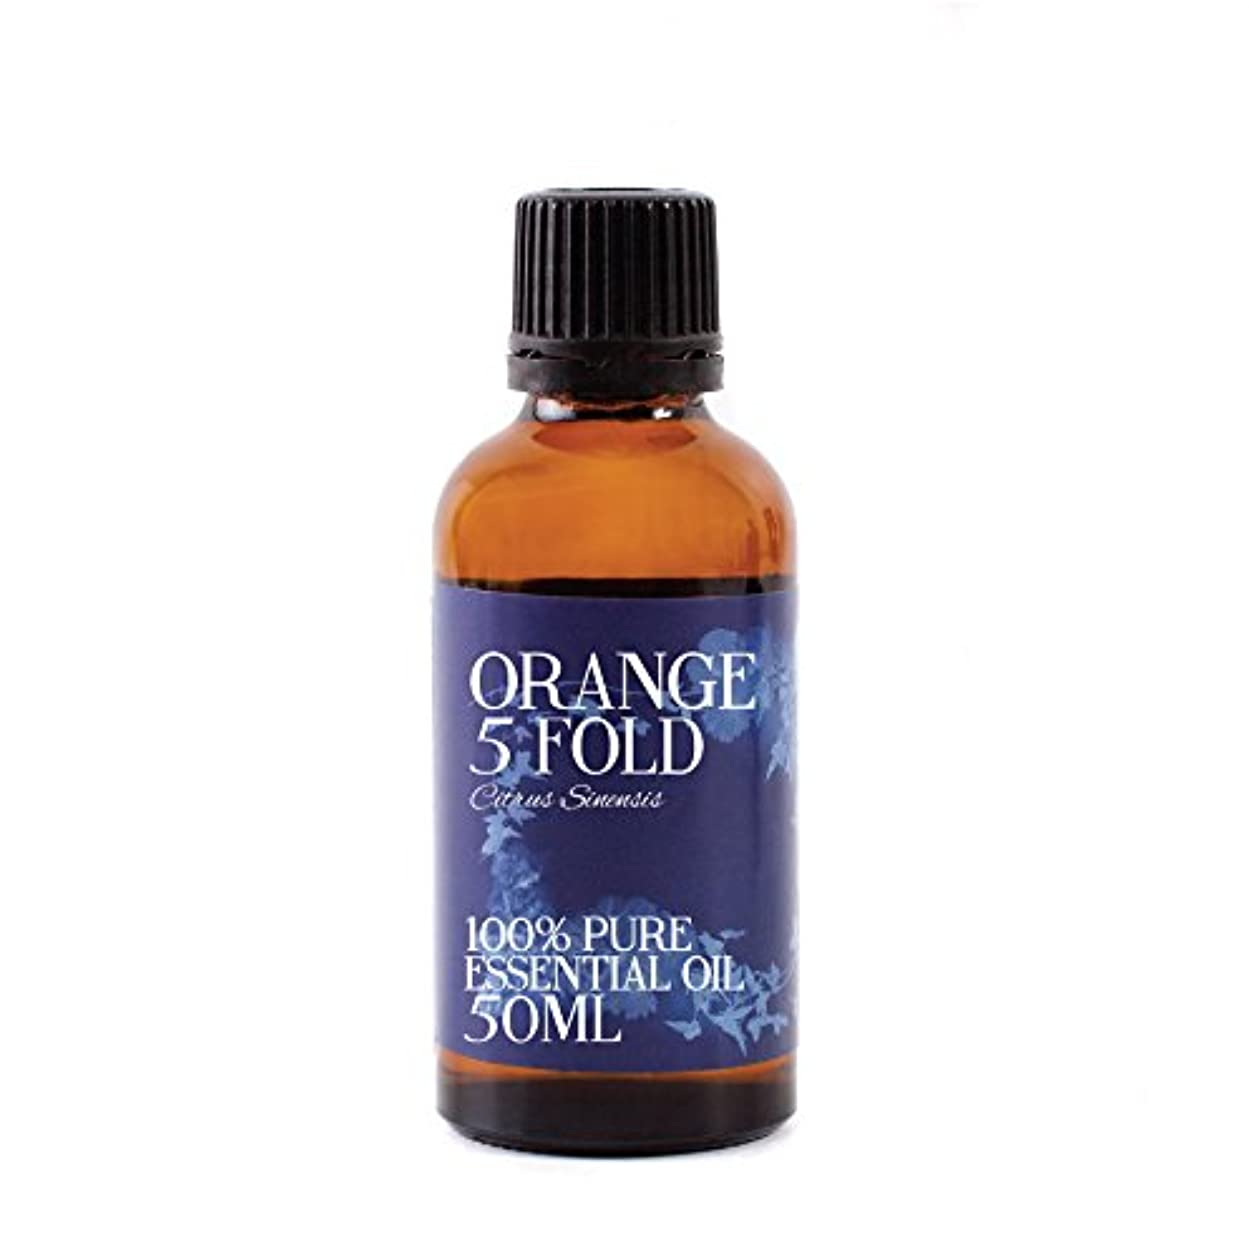 モーテル代わりにを立てる用心するMystic Moments | Orange 5 Fold Essential Oil - 50ml - 100% Pure